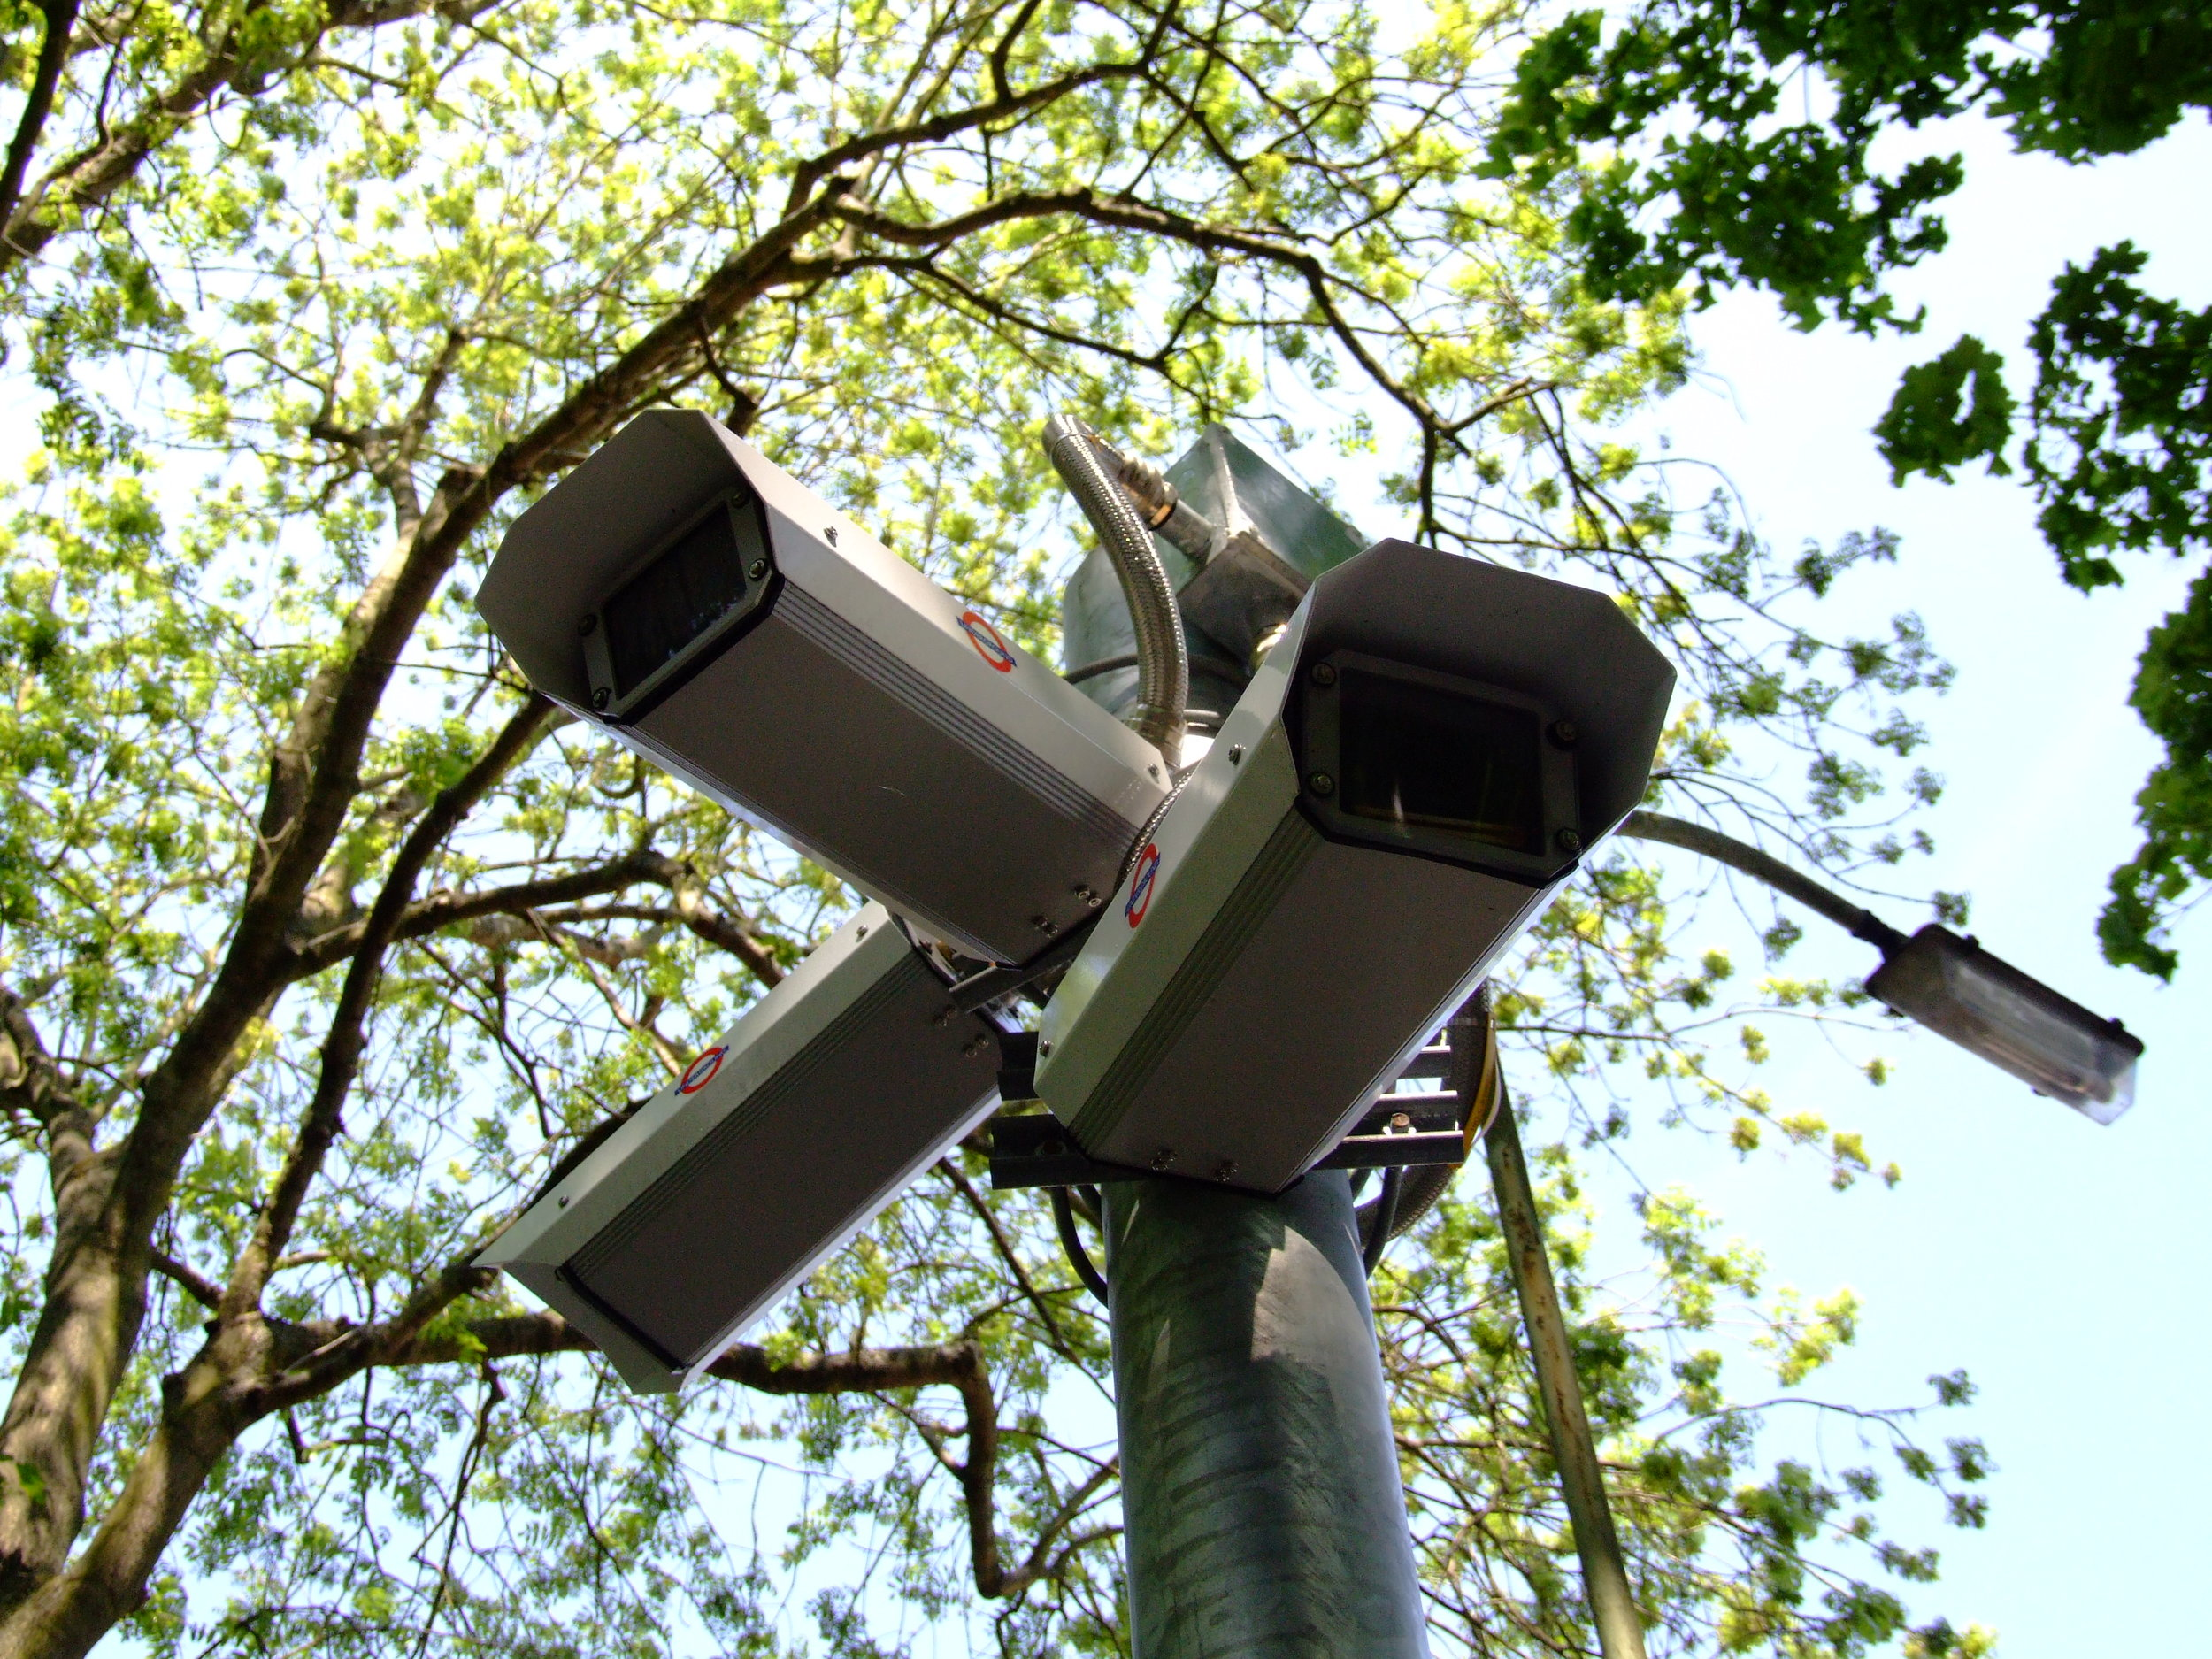 CCTV cameras c/o  R/DV/RS  on flickr.